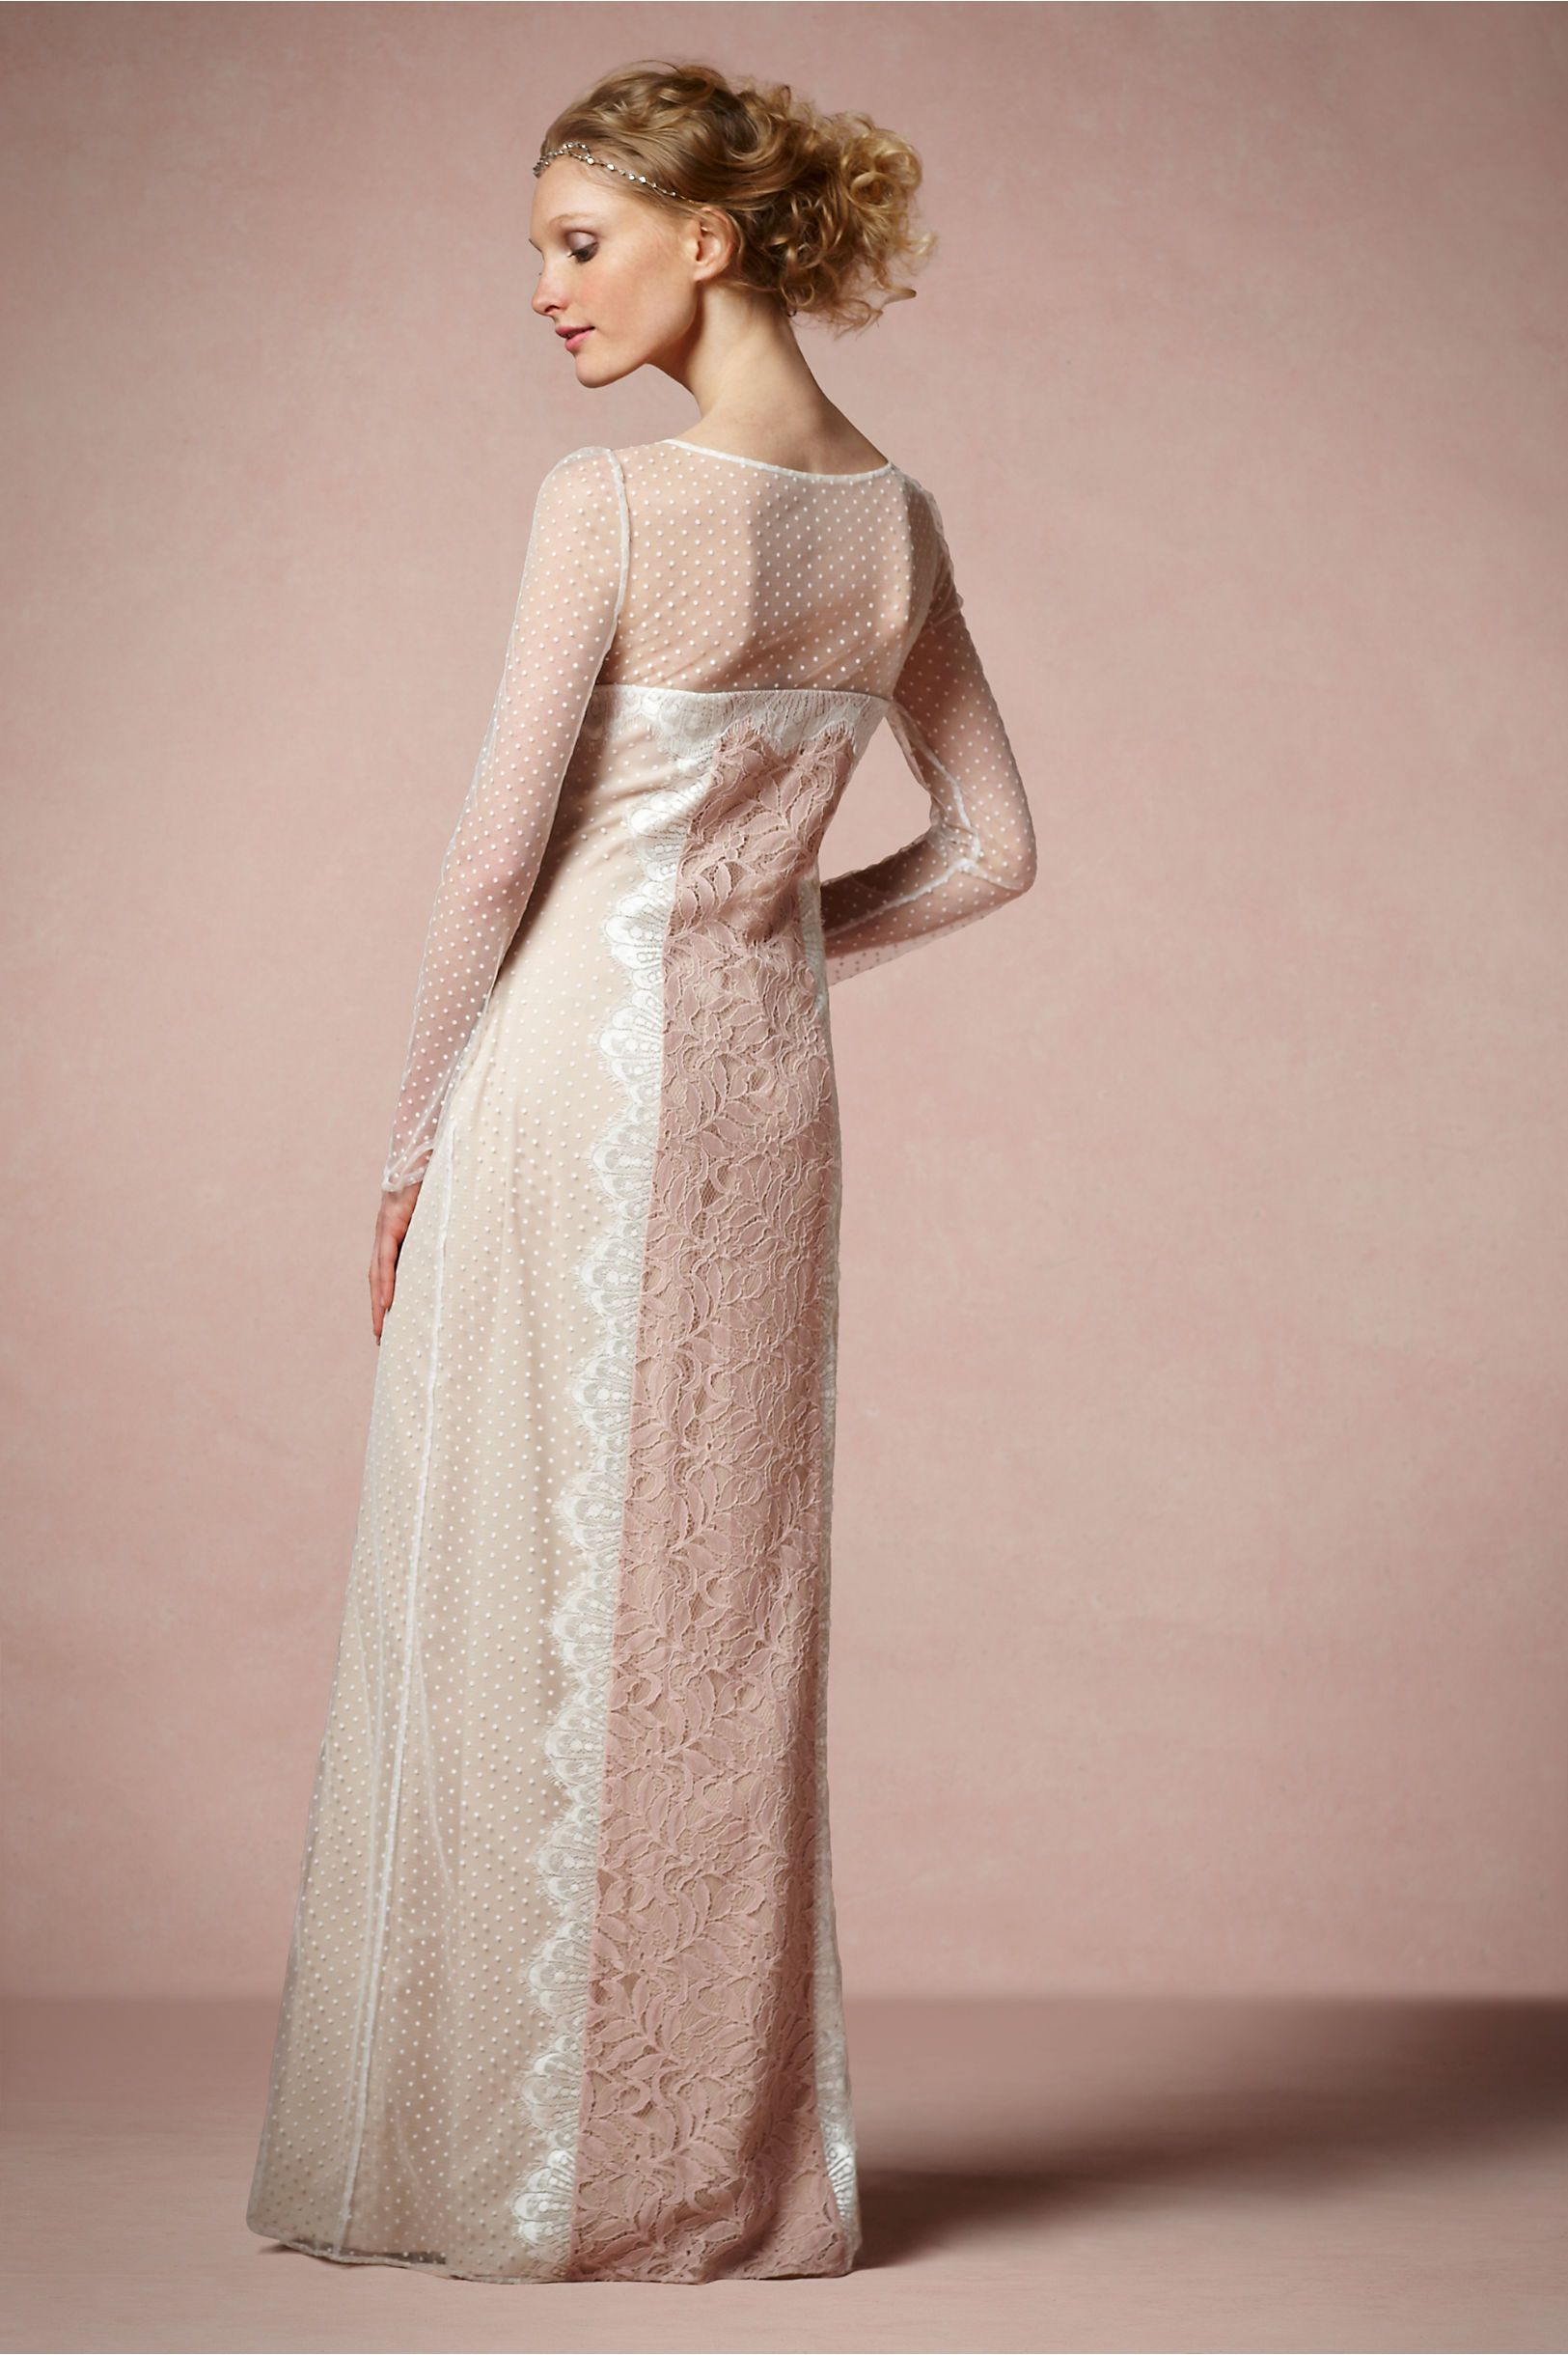 Cheap wedding dresses for military brides  Lace Inlay Dress from BHLDN  Bridal  Pinterest  Military ball